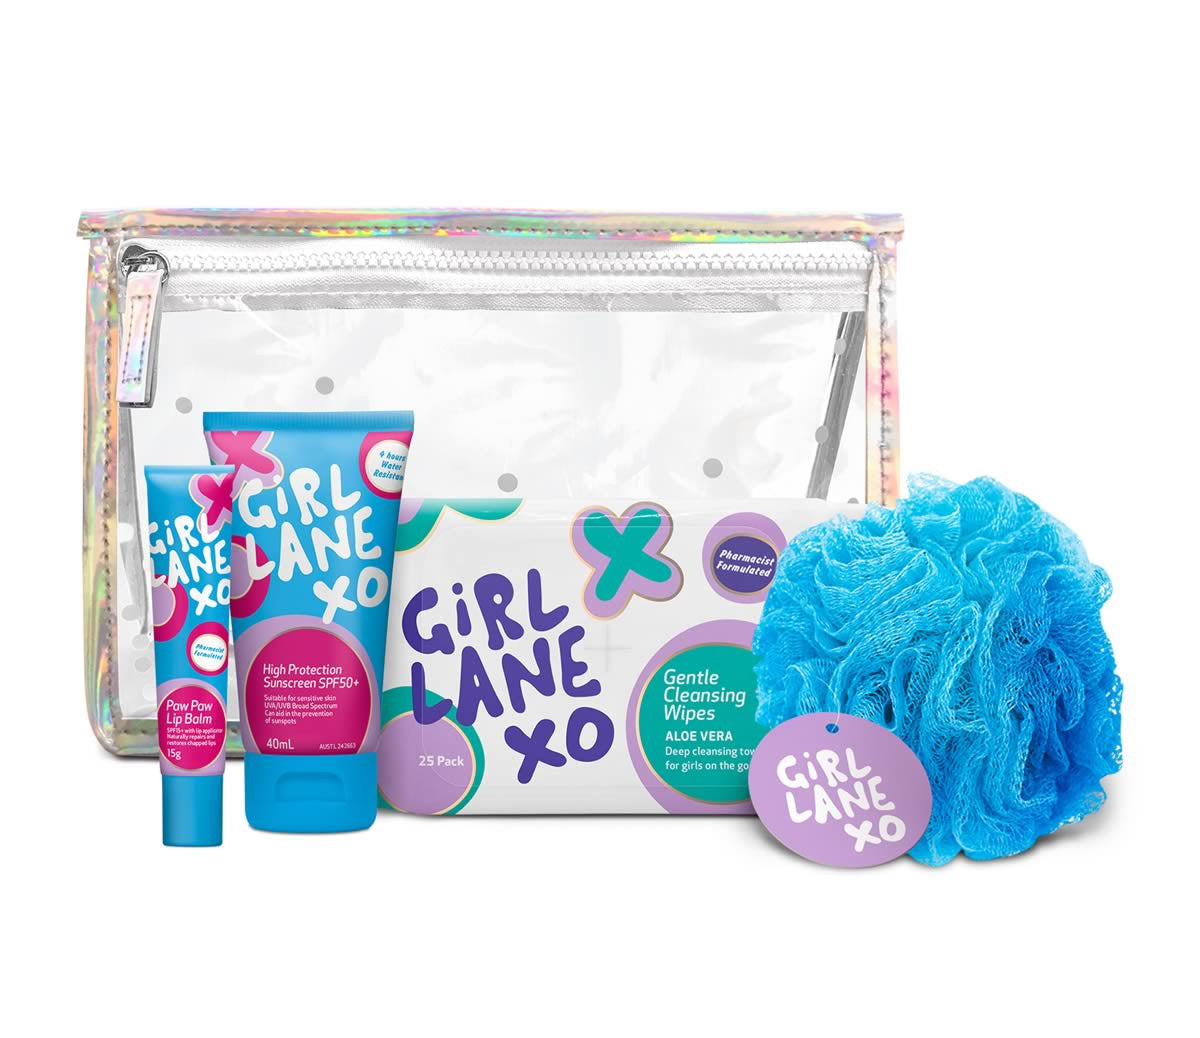 Sun care gift pack girl lane girl lane sun care gift pack negle Images